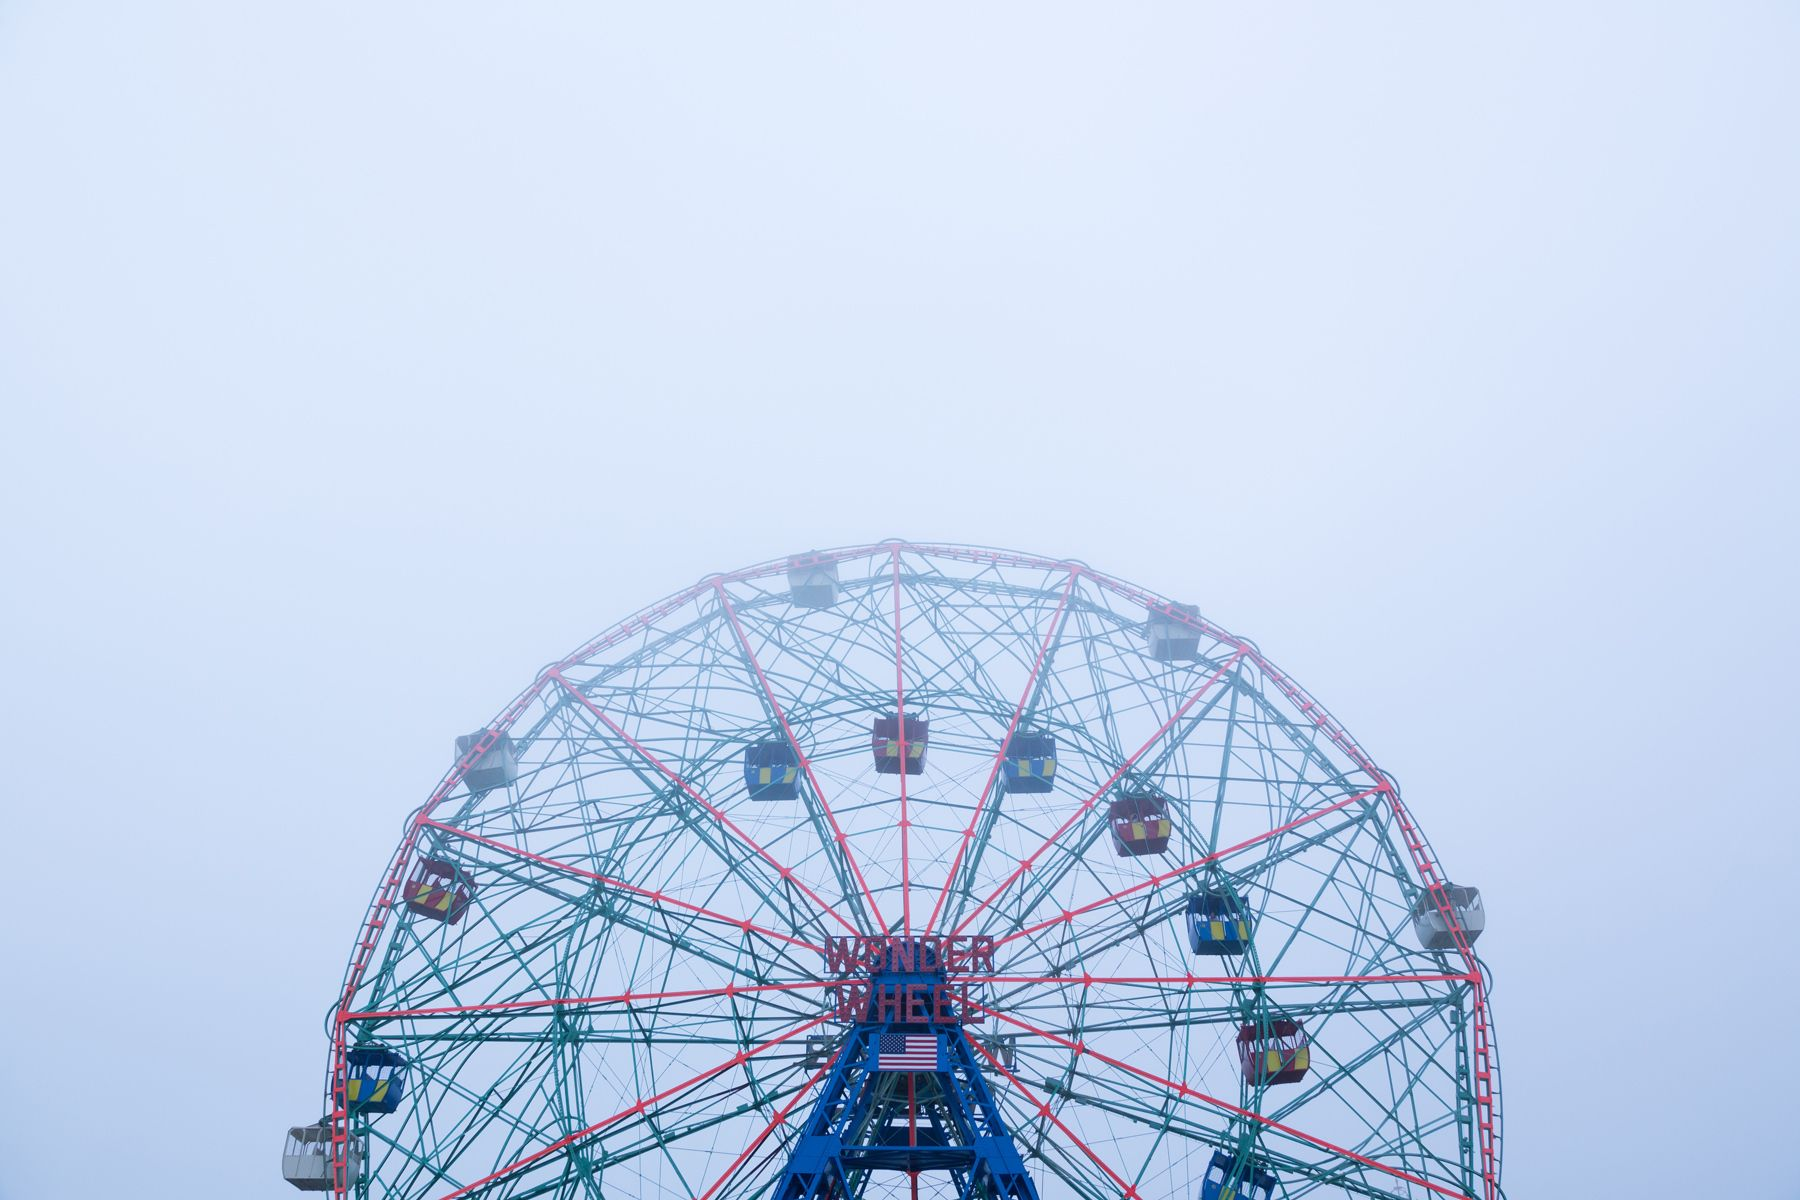 1coney_island_june_2016_315_4